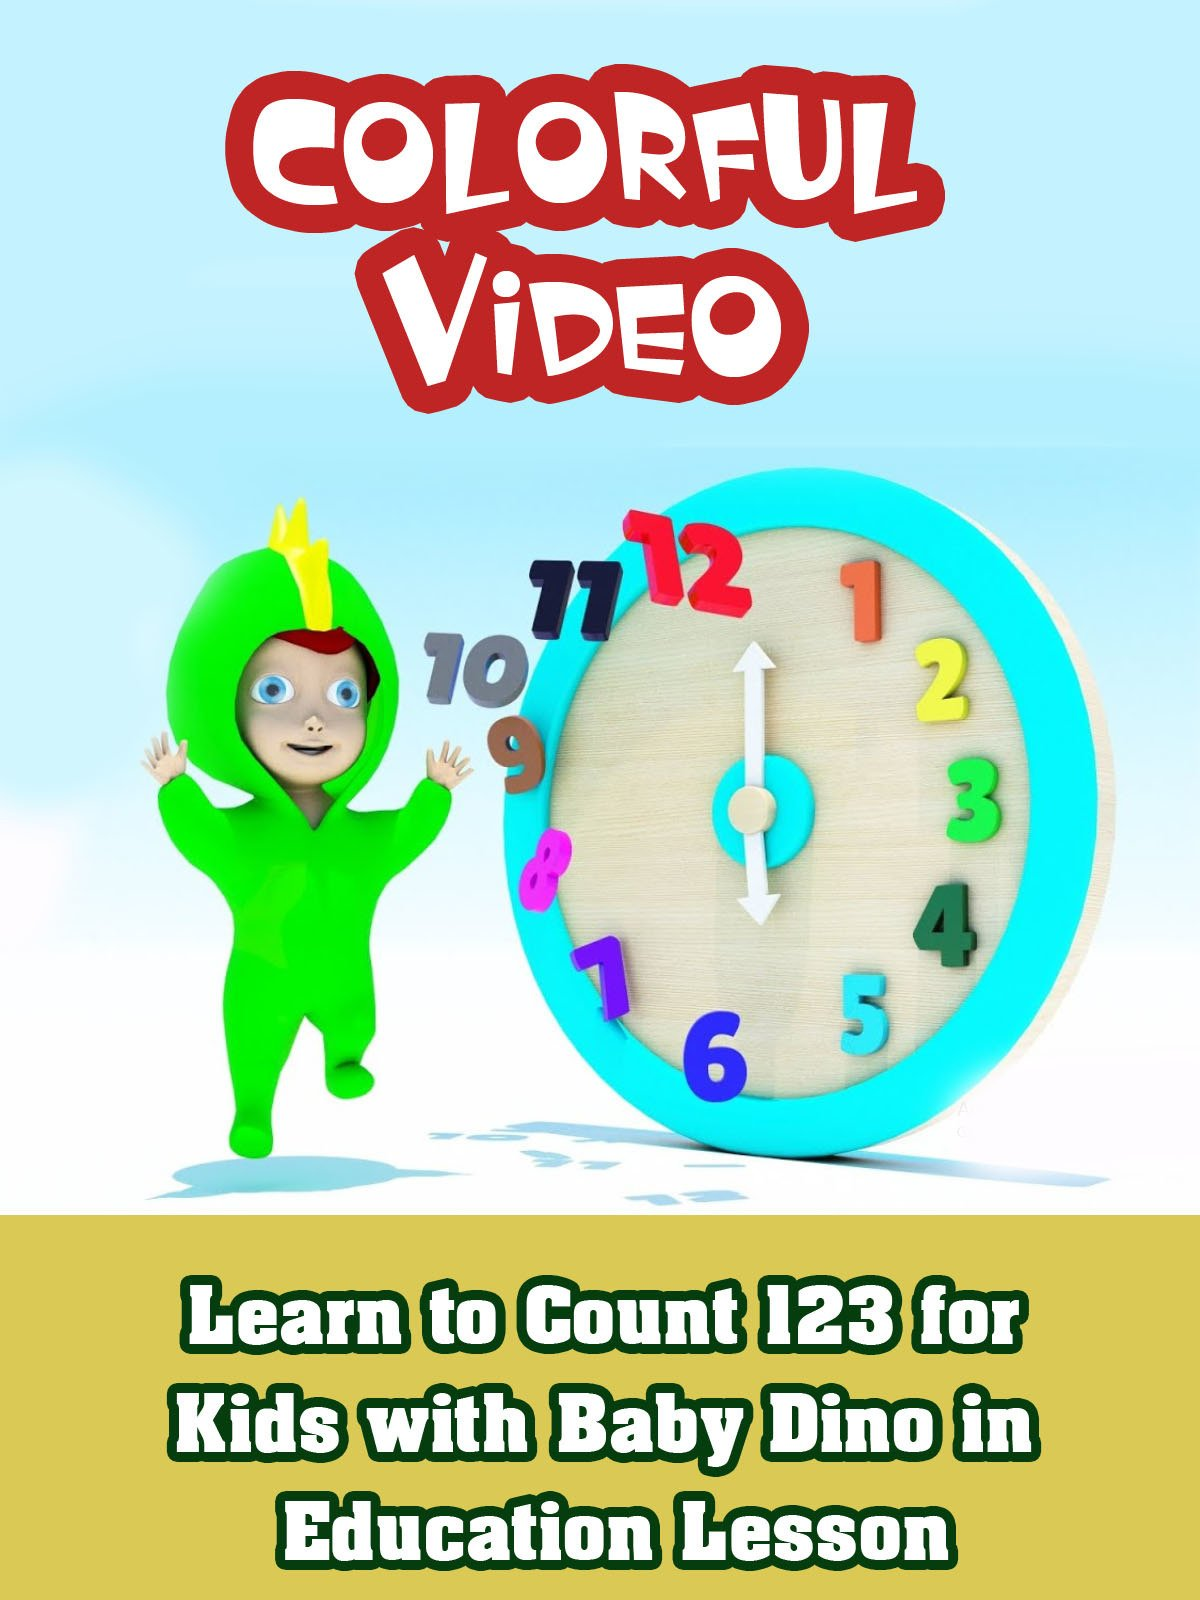 Learn to Count 123 for Kids with Baby Dino in Education Lesson